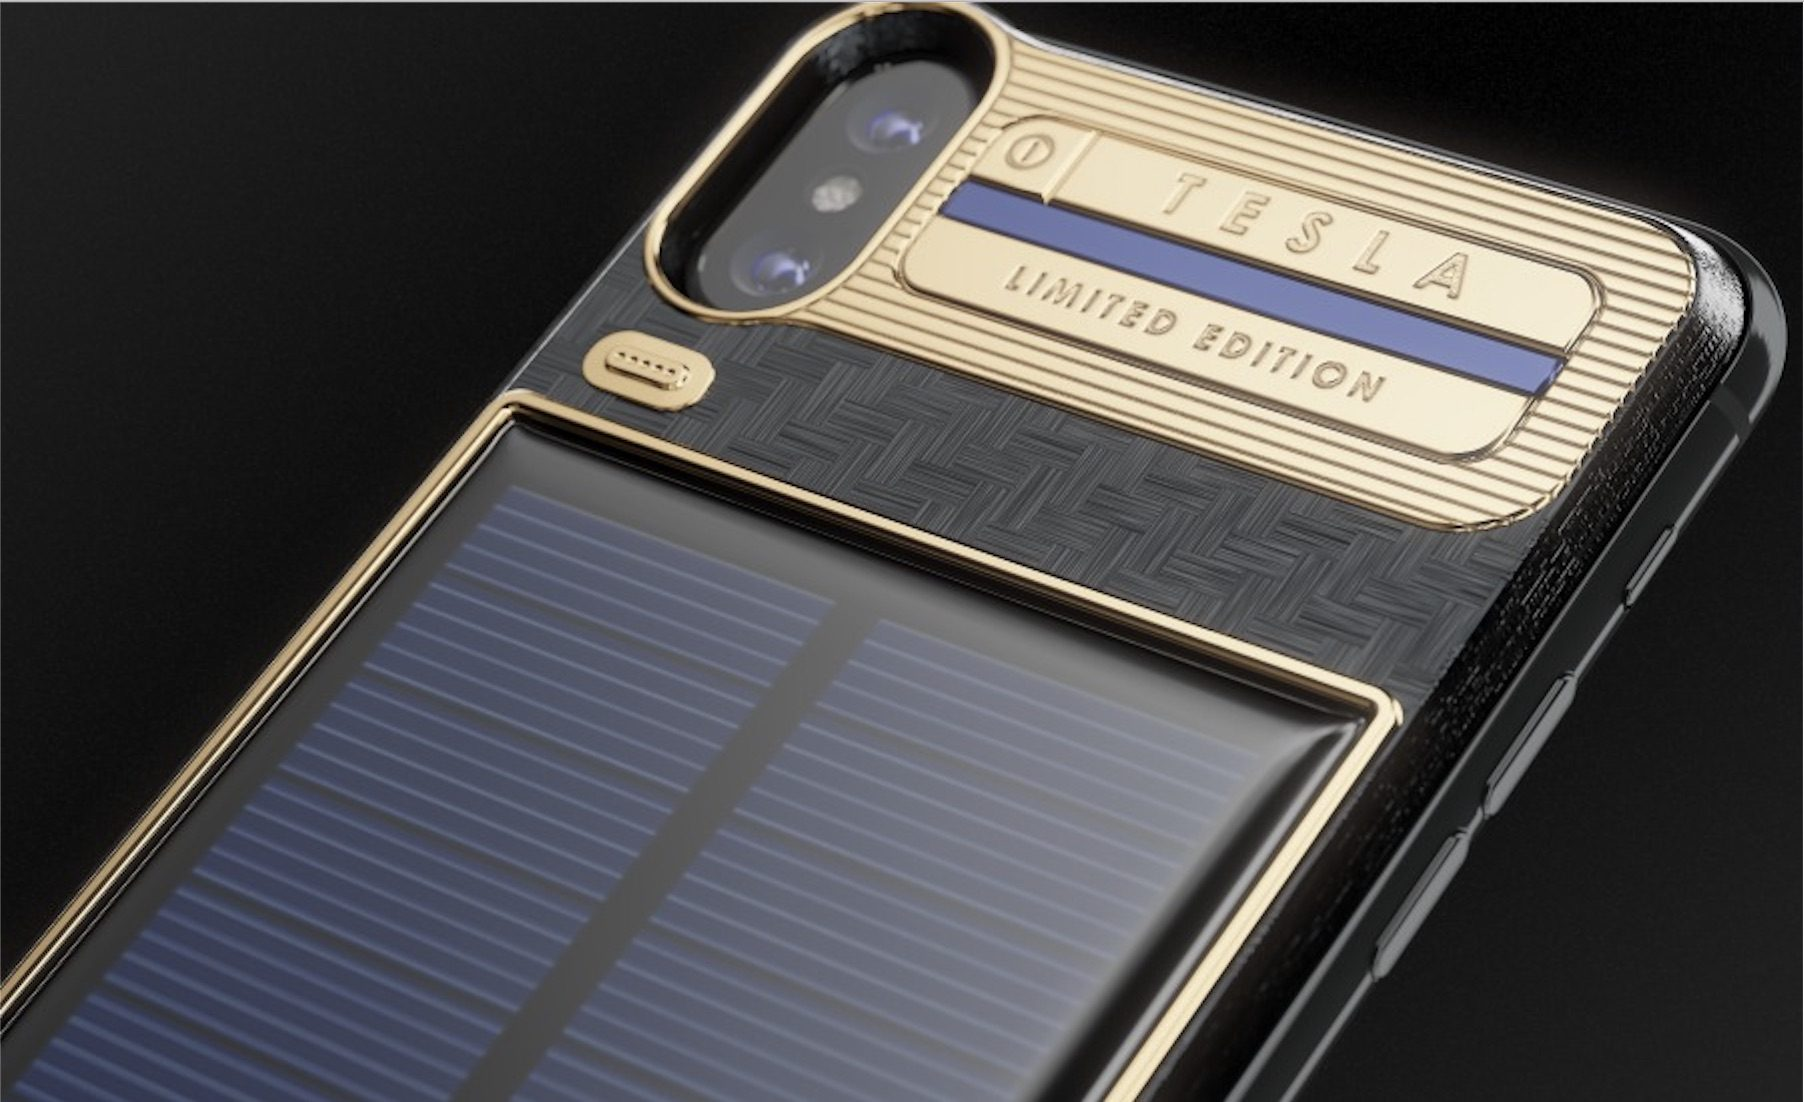 iPhone X Luxury Battery Case with Integrated Solar Panel Hits Market